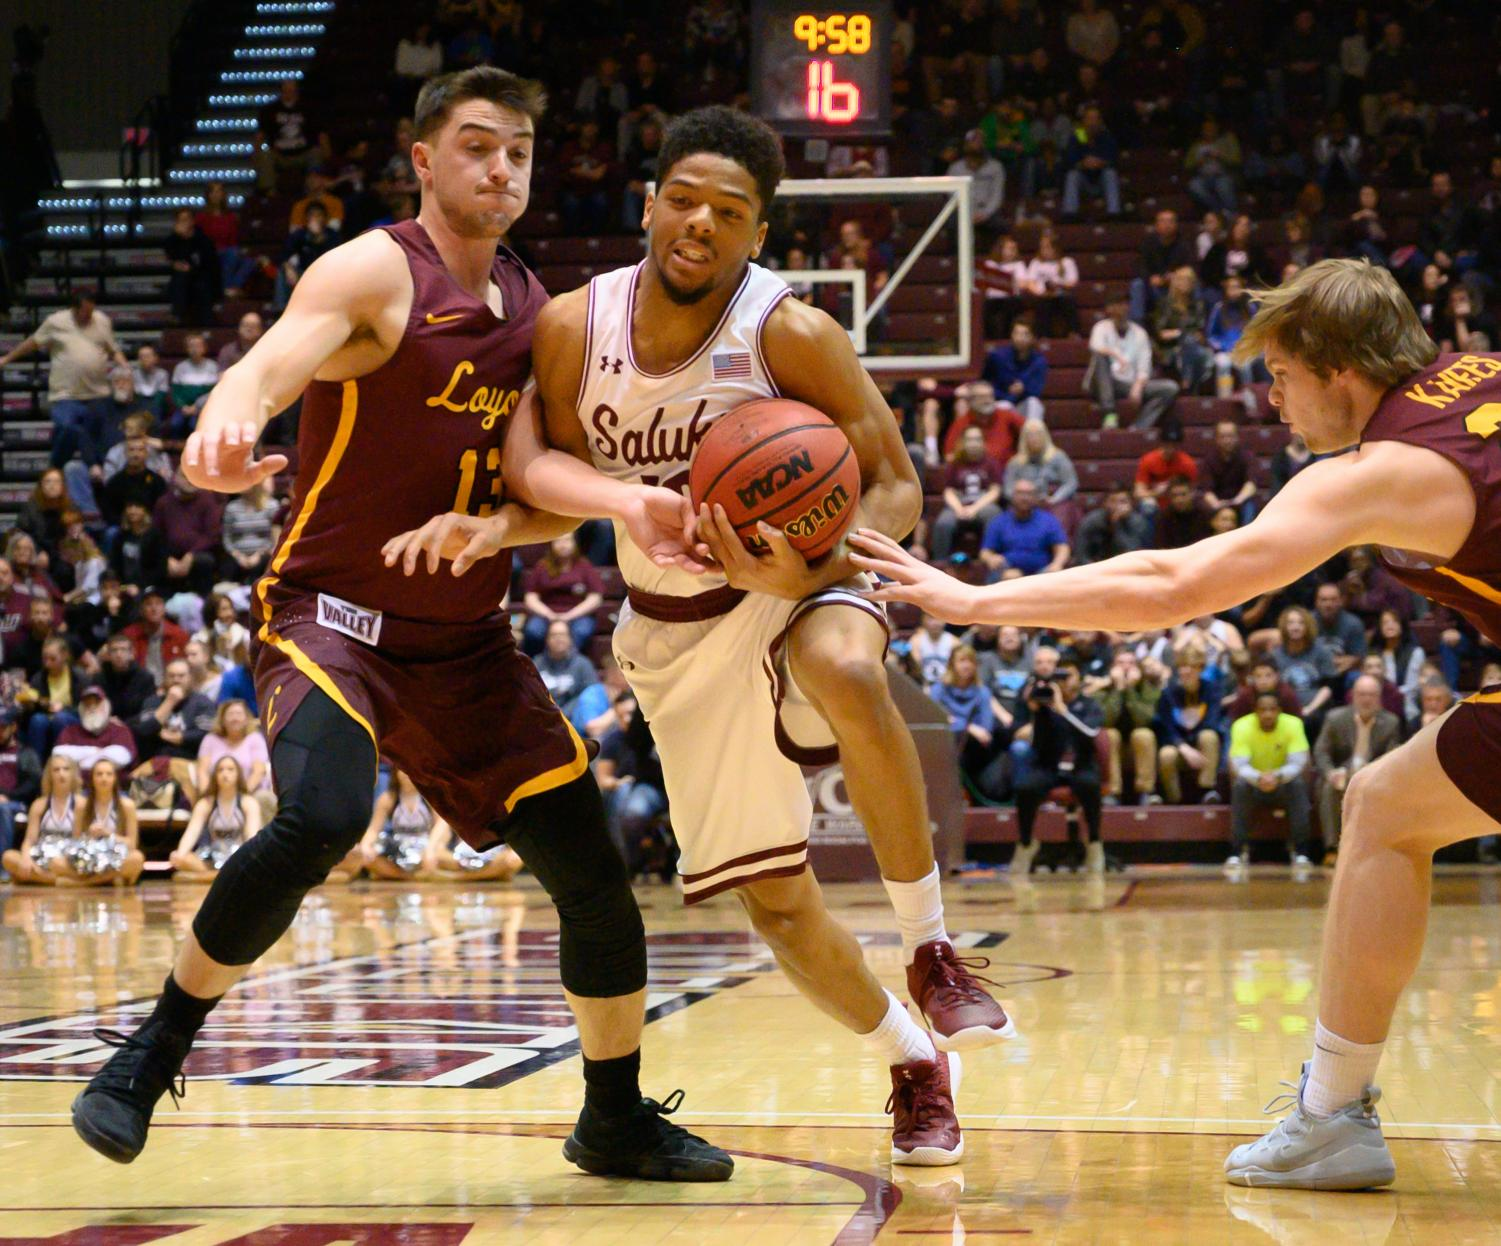 Southern+Illinois+Salukis+guard+Aaron+Cook+attempts+to+get+past+Loyola+Ramblers+guard+Clayton+Custer+and+Loyola+Ramblers+guard+Cooper+Kaifes+on+Sunday%2C+Feb.+24%2C+2019%2C+during+a+matchup+between+the+Southern+Illinois+Salukis+and+the+Loyola+Ramblers+at+SIU+Arena.